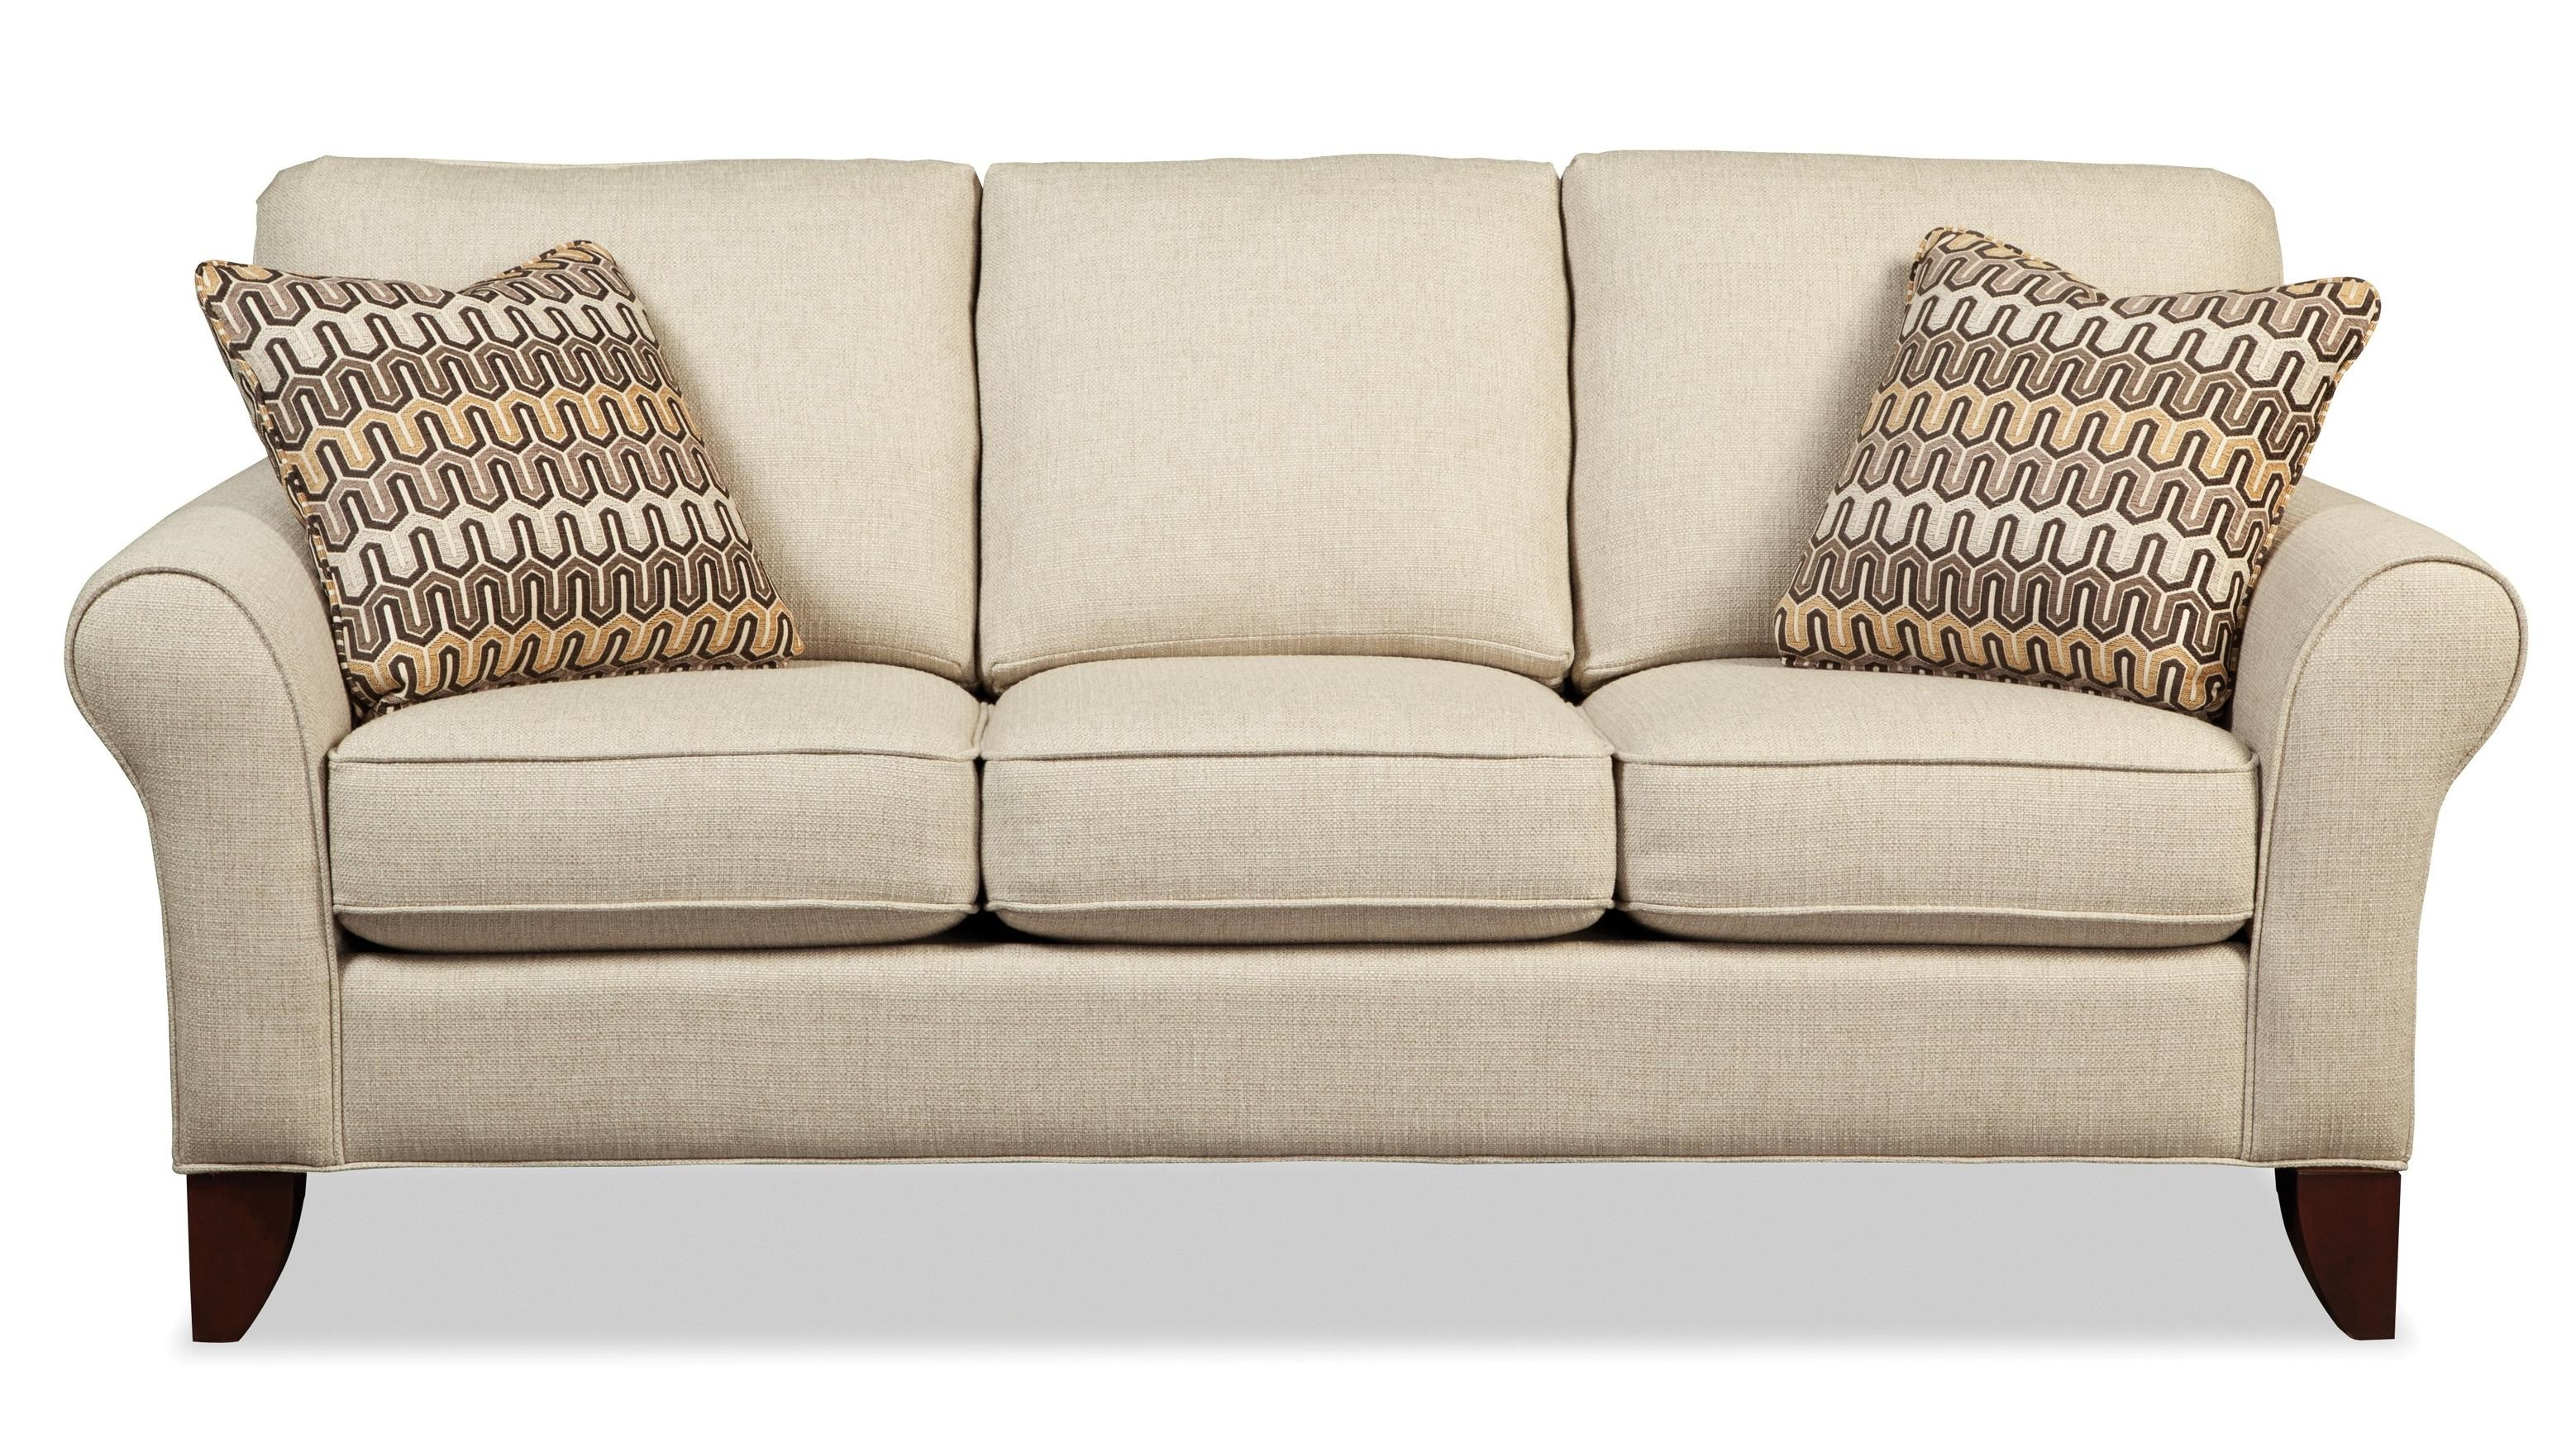 Craftmaster 7551 755150 Transitional Small Scale Sofa | Becker Furniture  World | Sofas